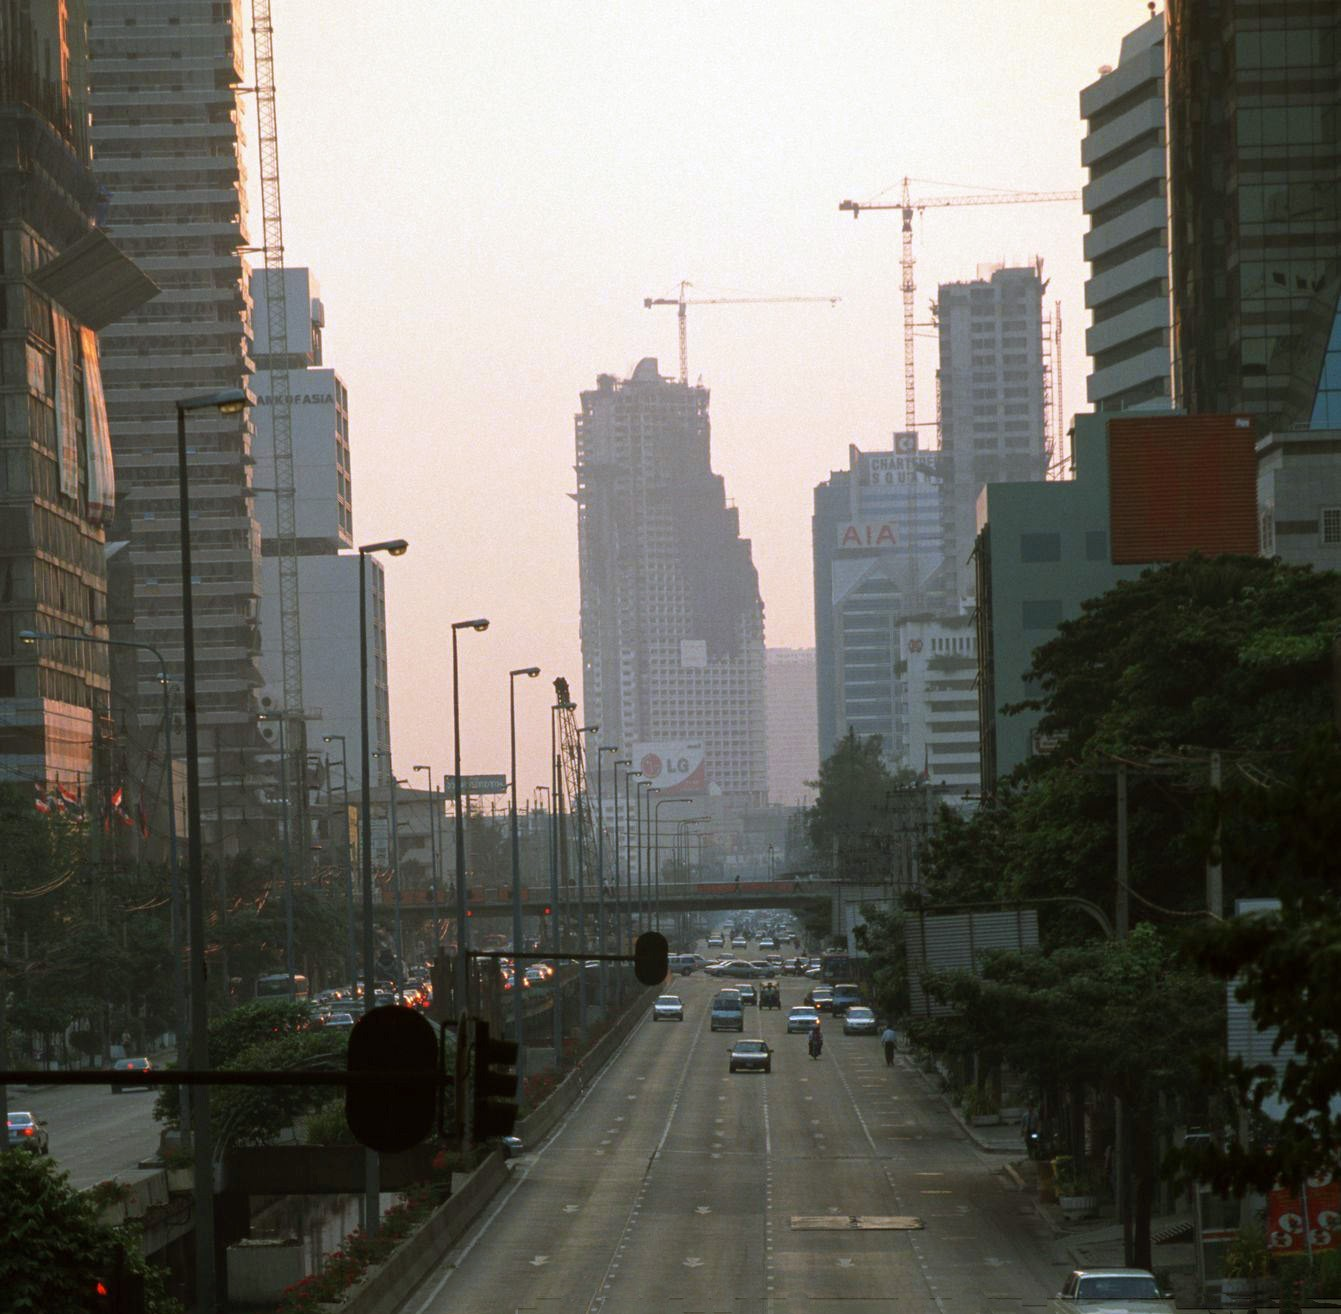 1998 Bangkok Friday evening rush hour empty streets due to Thailand's economic crash of 1997